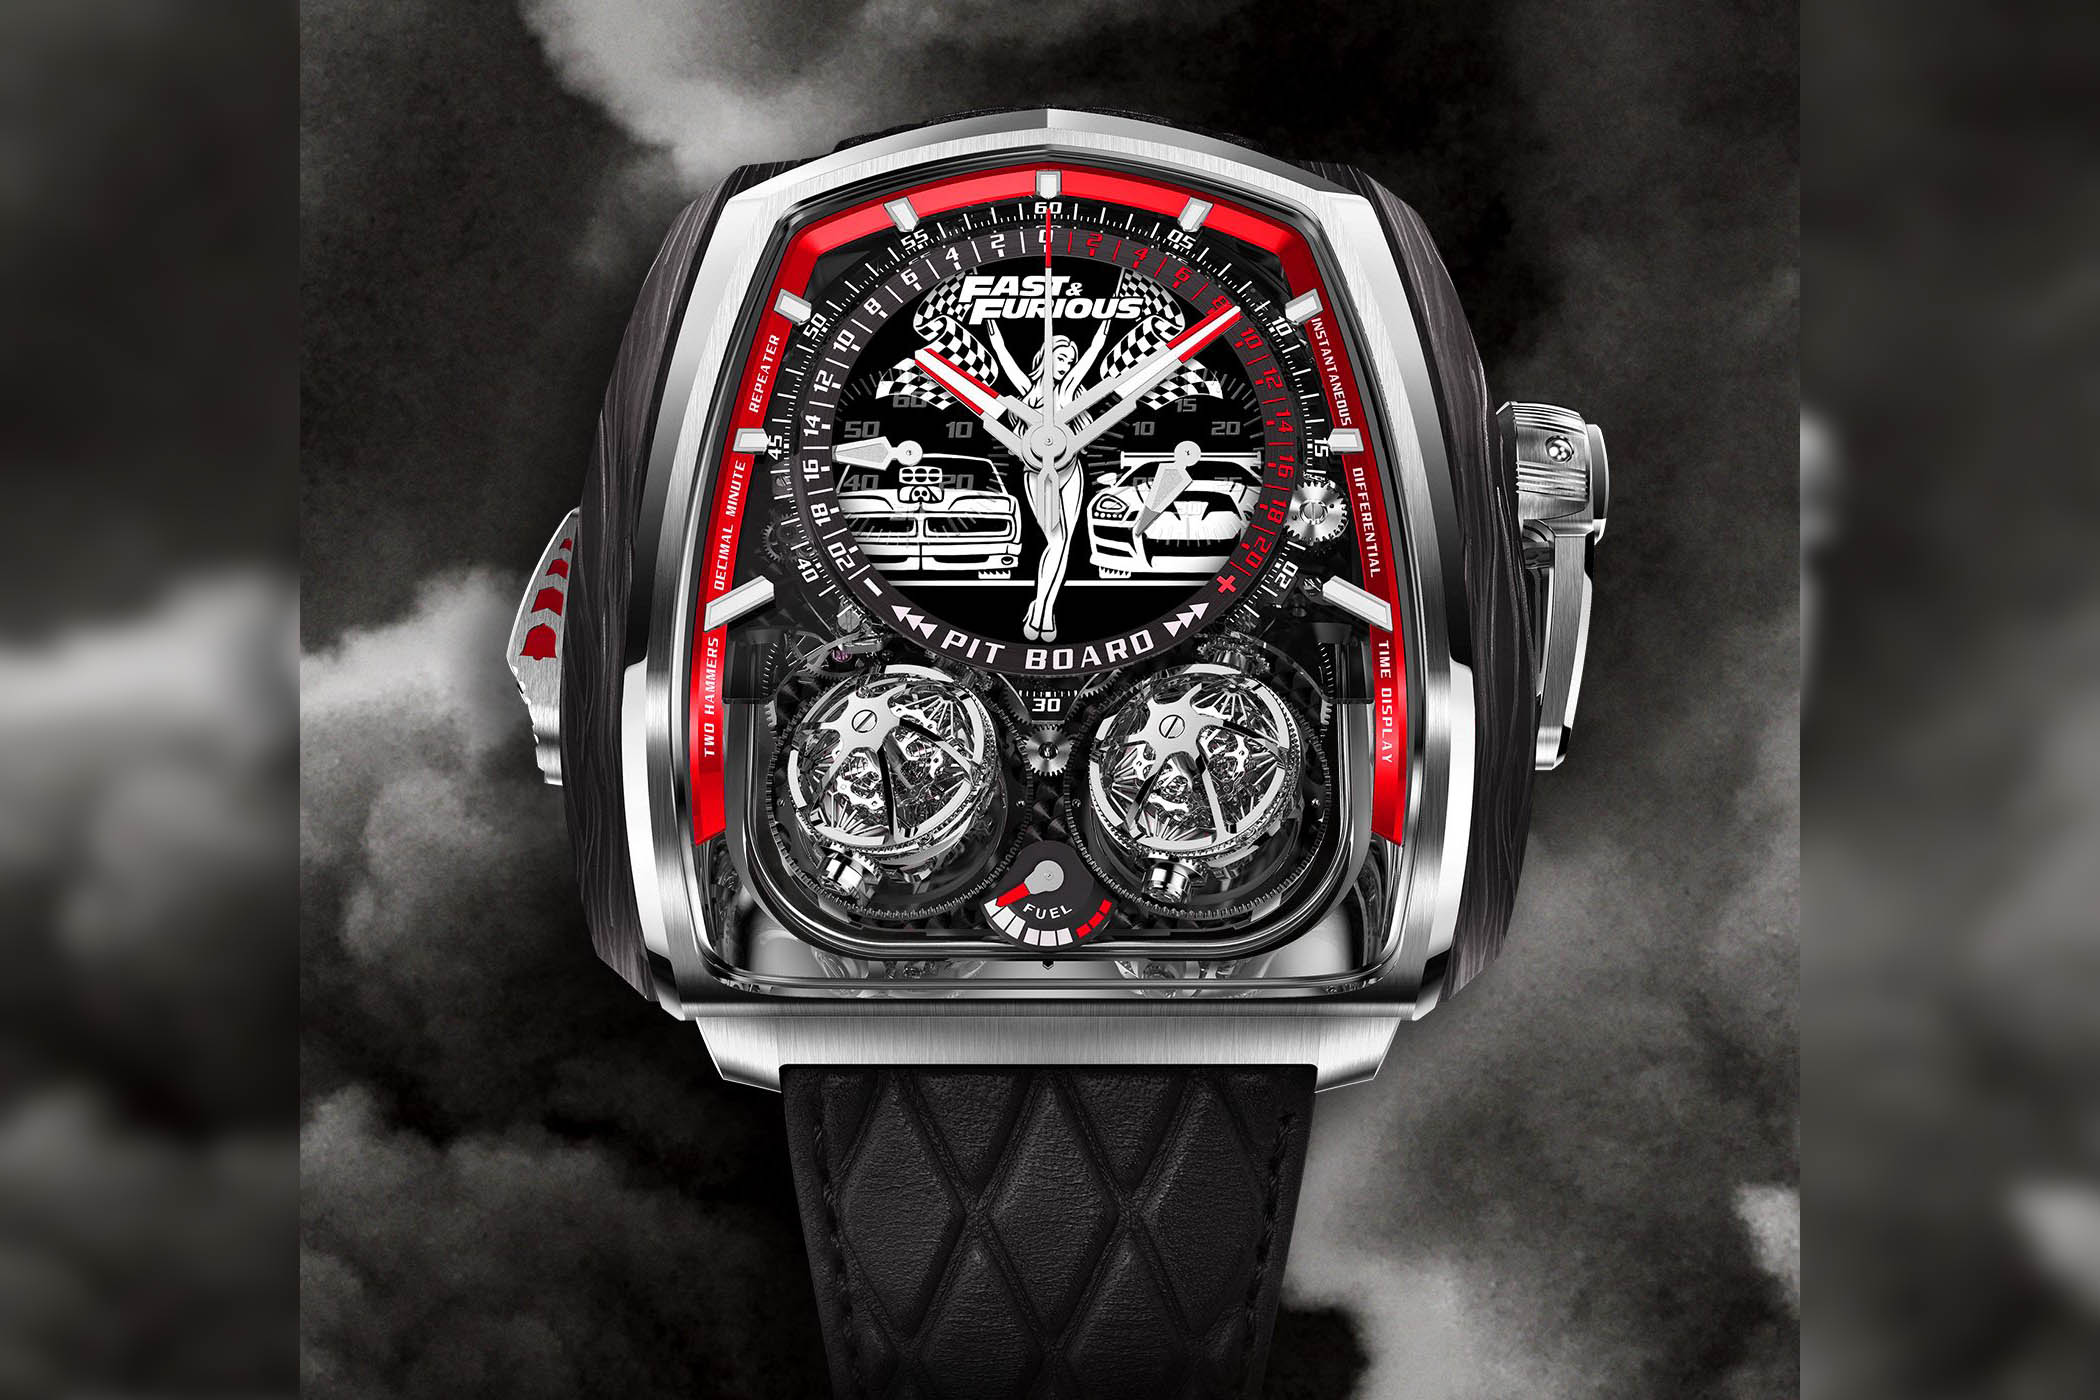 Jacob & Co Twin Turbo Fast & Furious Limited Edition